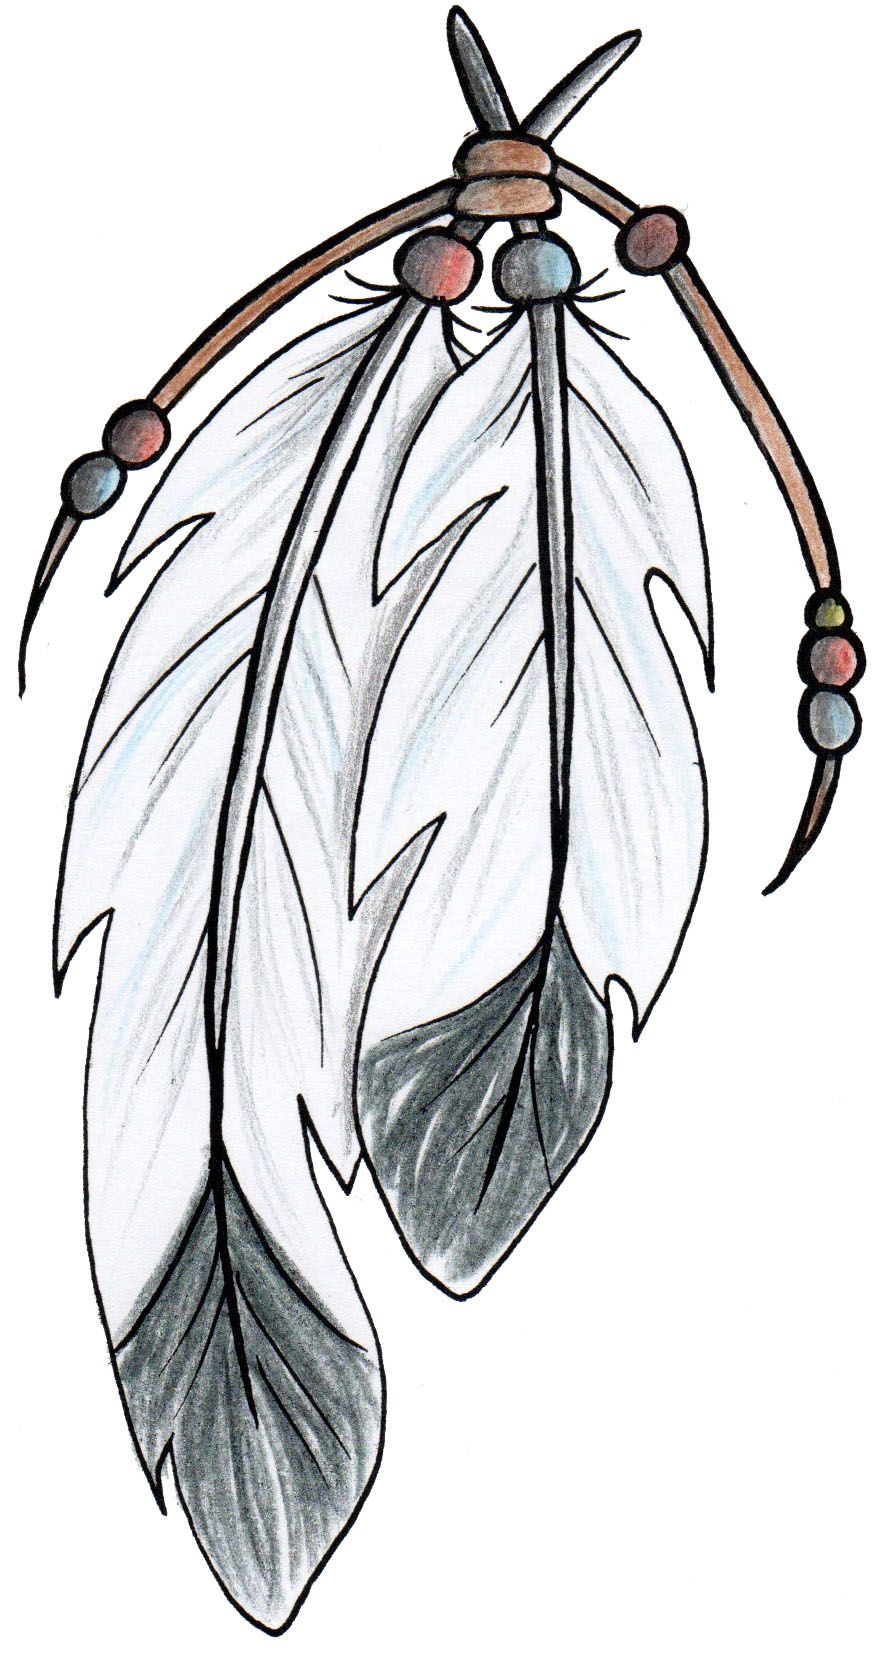 Native American Style Feathers Tattoo Design Tattoo Ideas